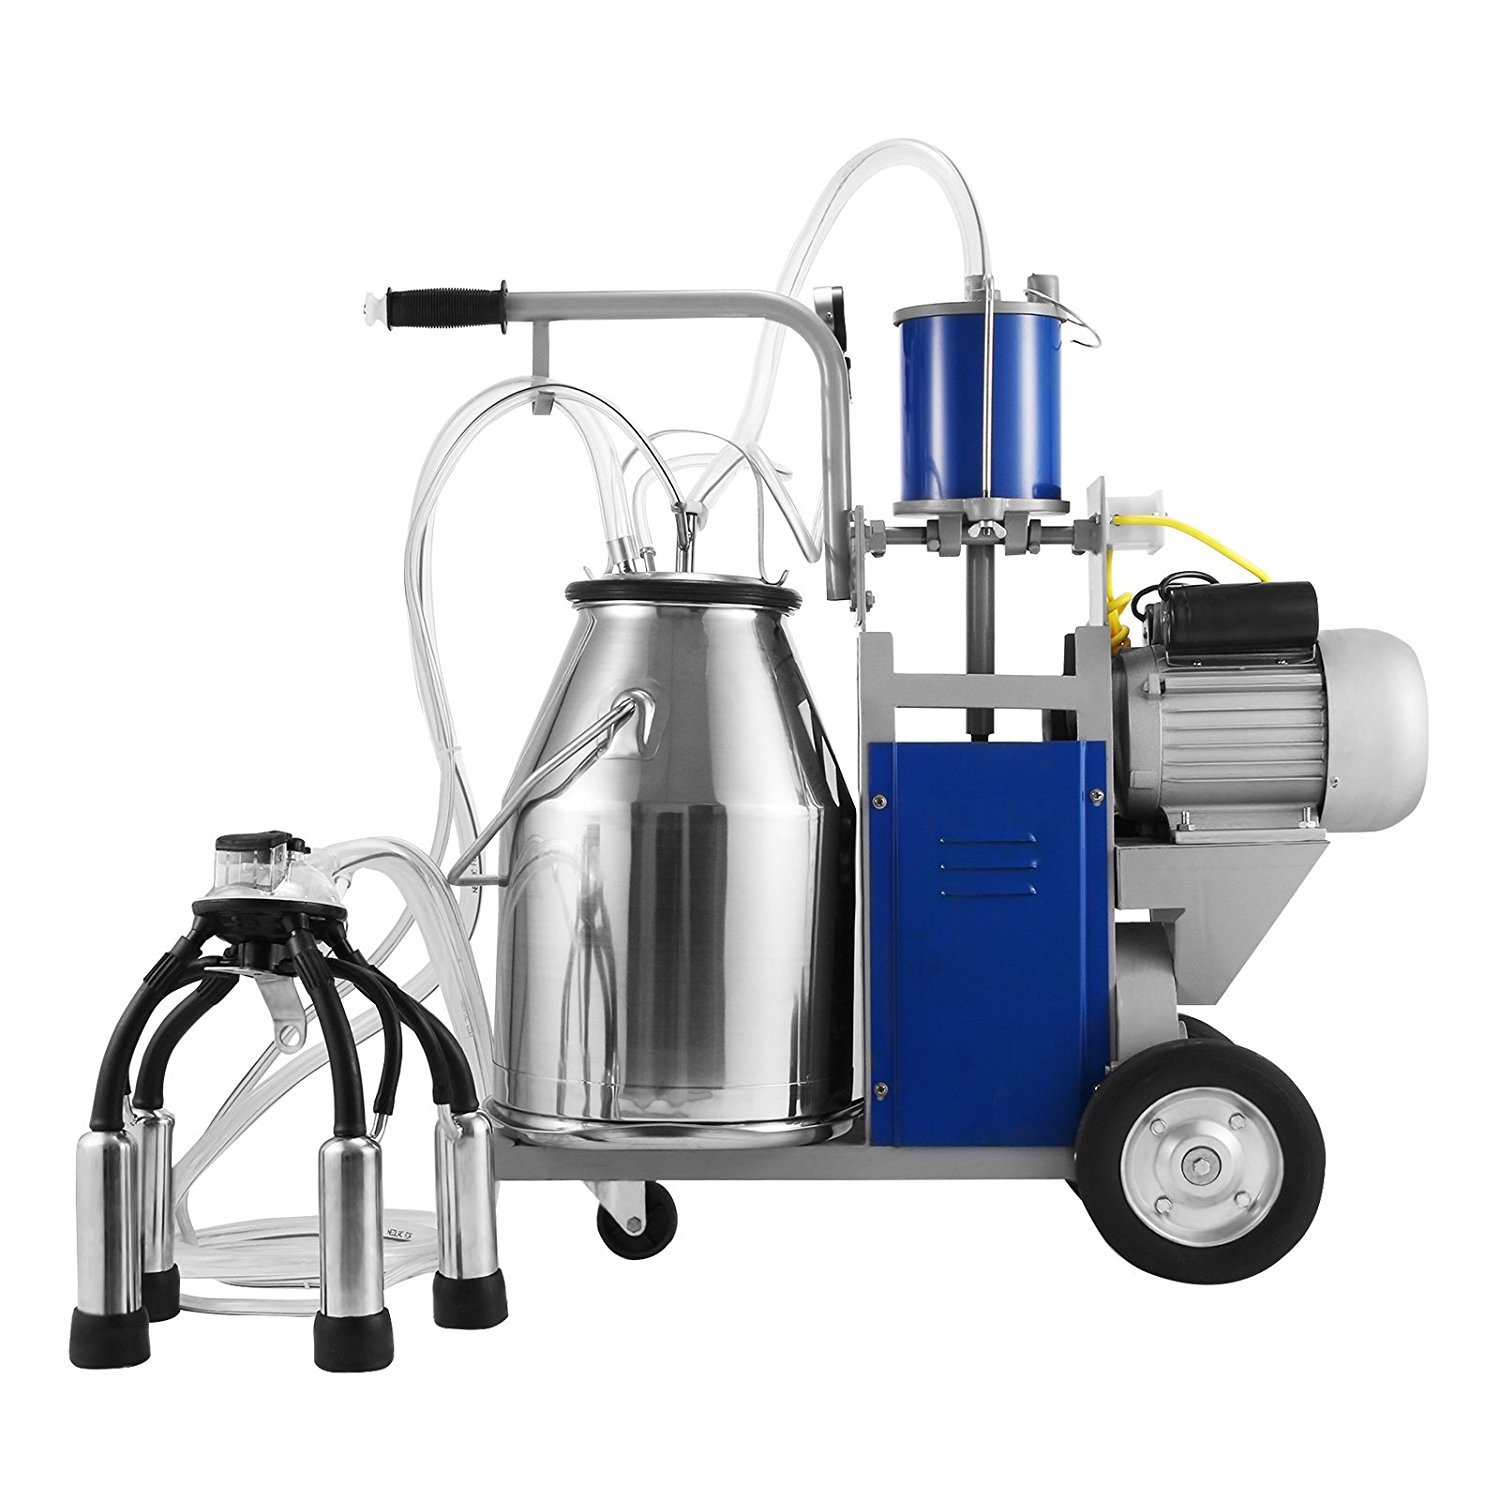 BestEquip Milking Machine 1440 RPM 10-12 Cows per Hour Electric Milking Machine with 25L 304 Stainless Steel Bucket Milk Machine for Cows by BestEquip